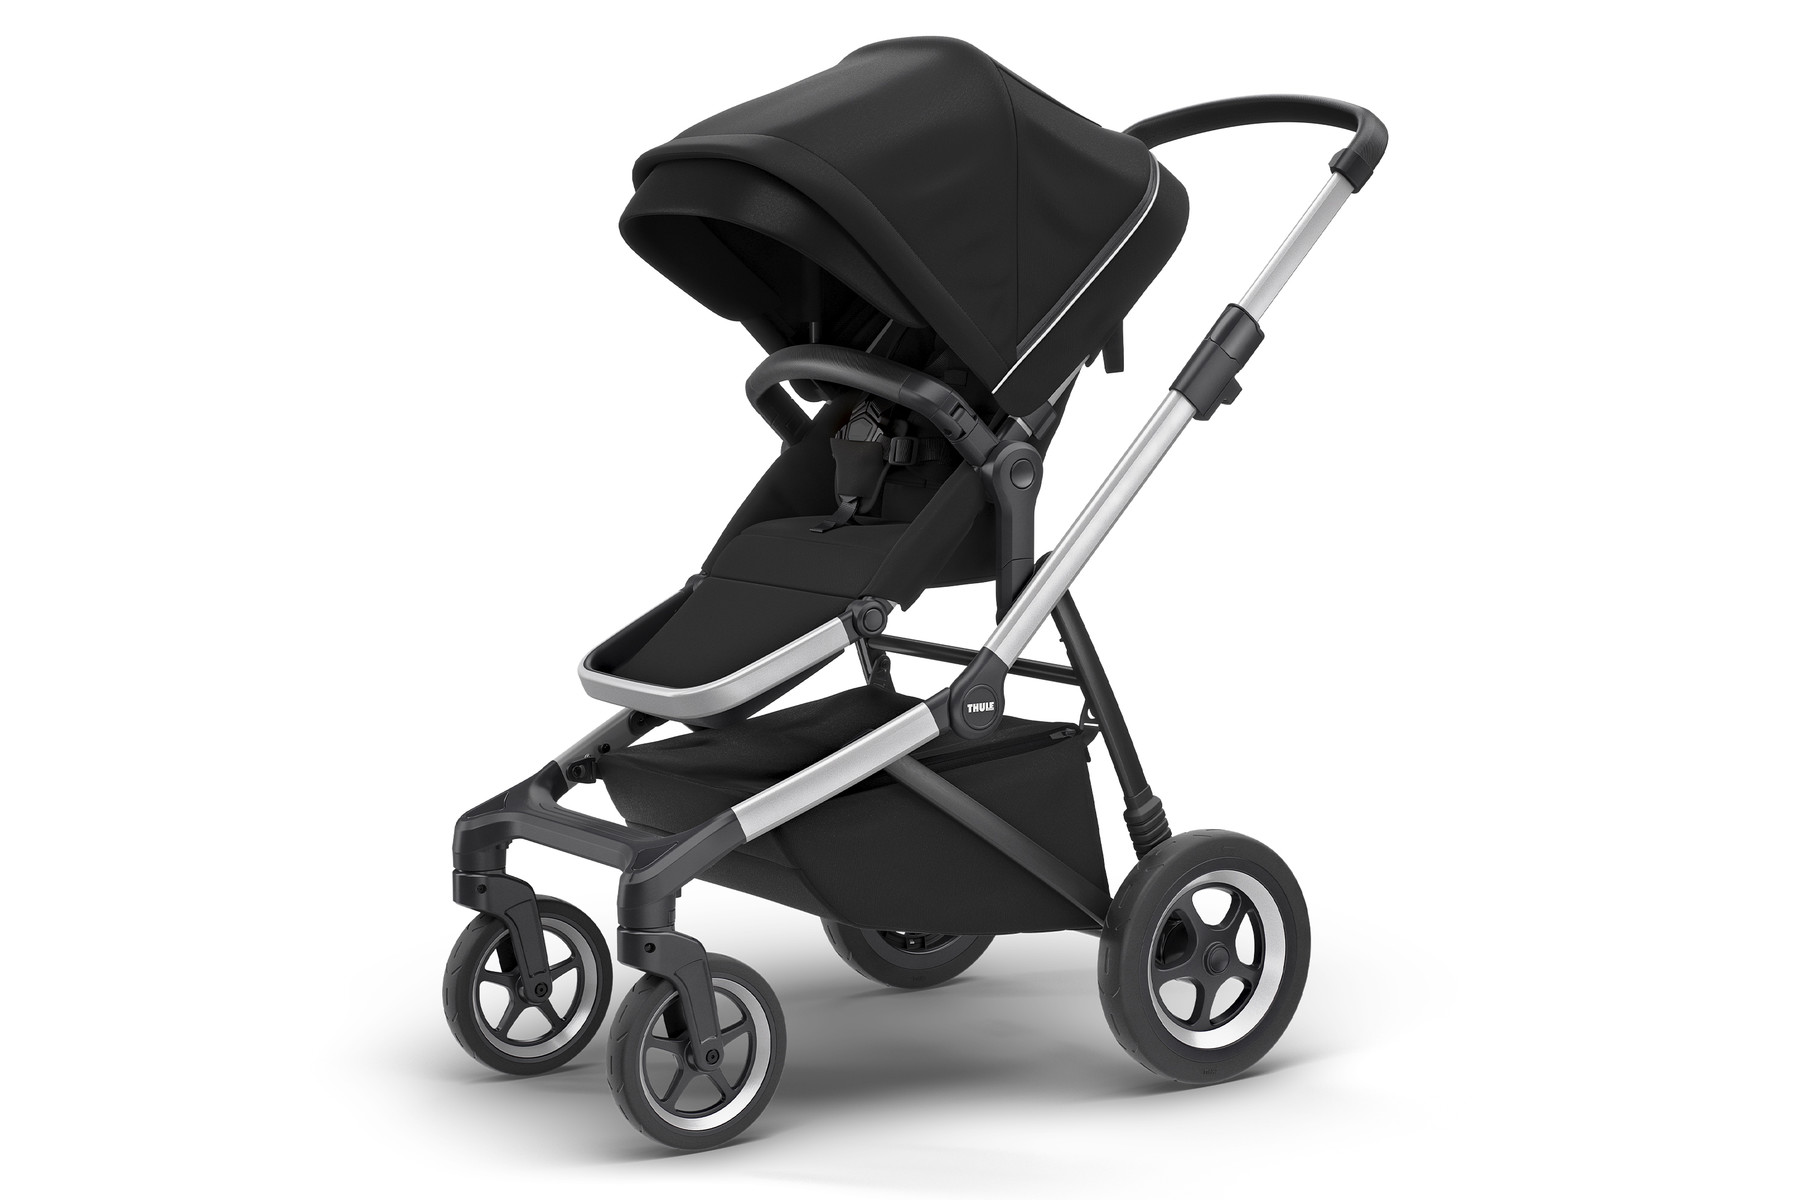 Stroller Thule Sleek MidnightBlack Black